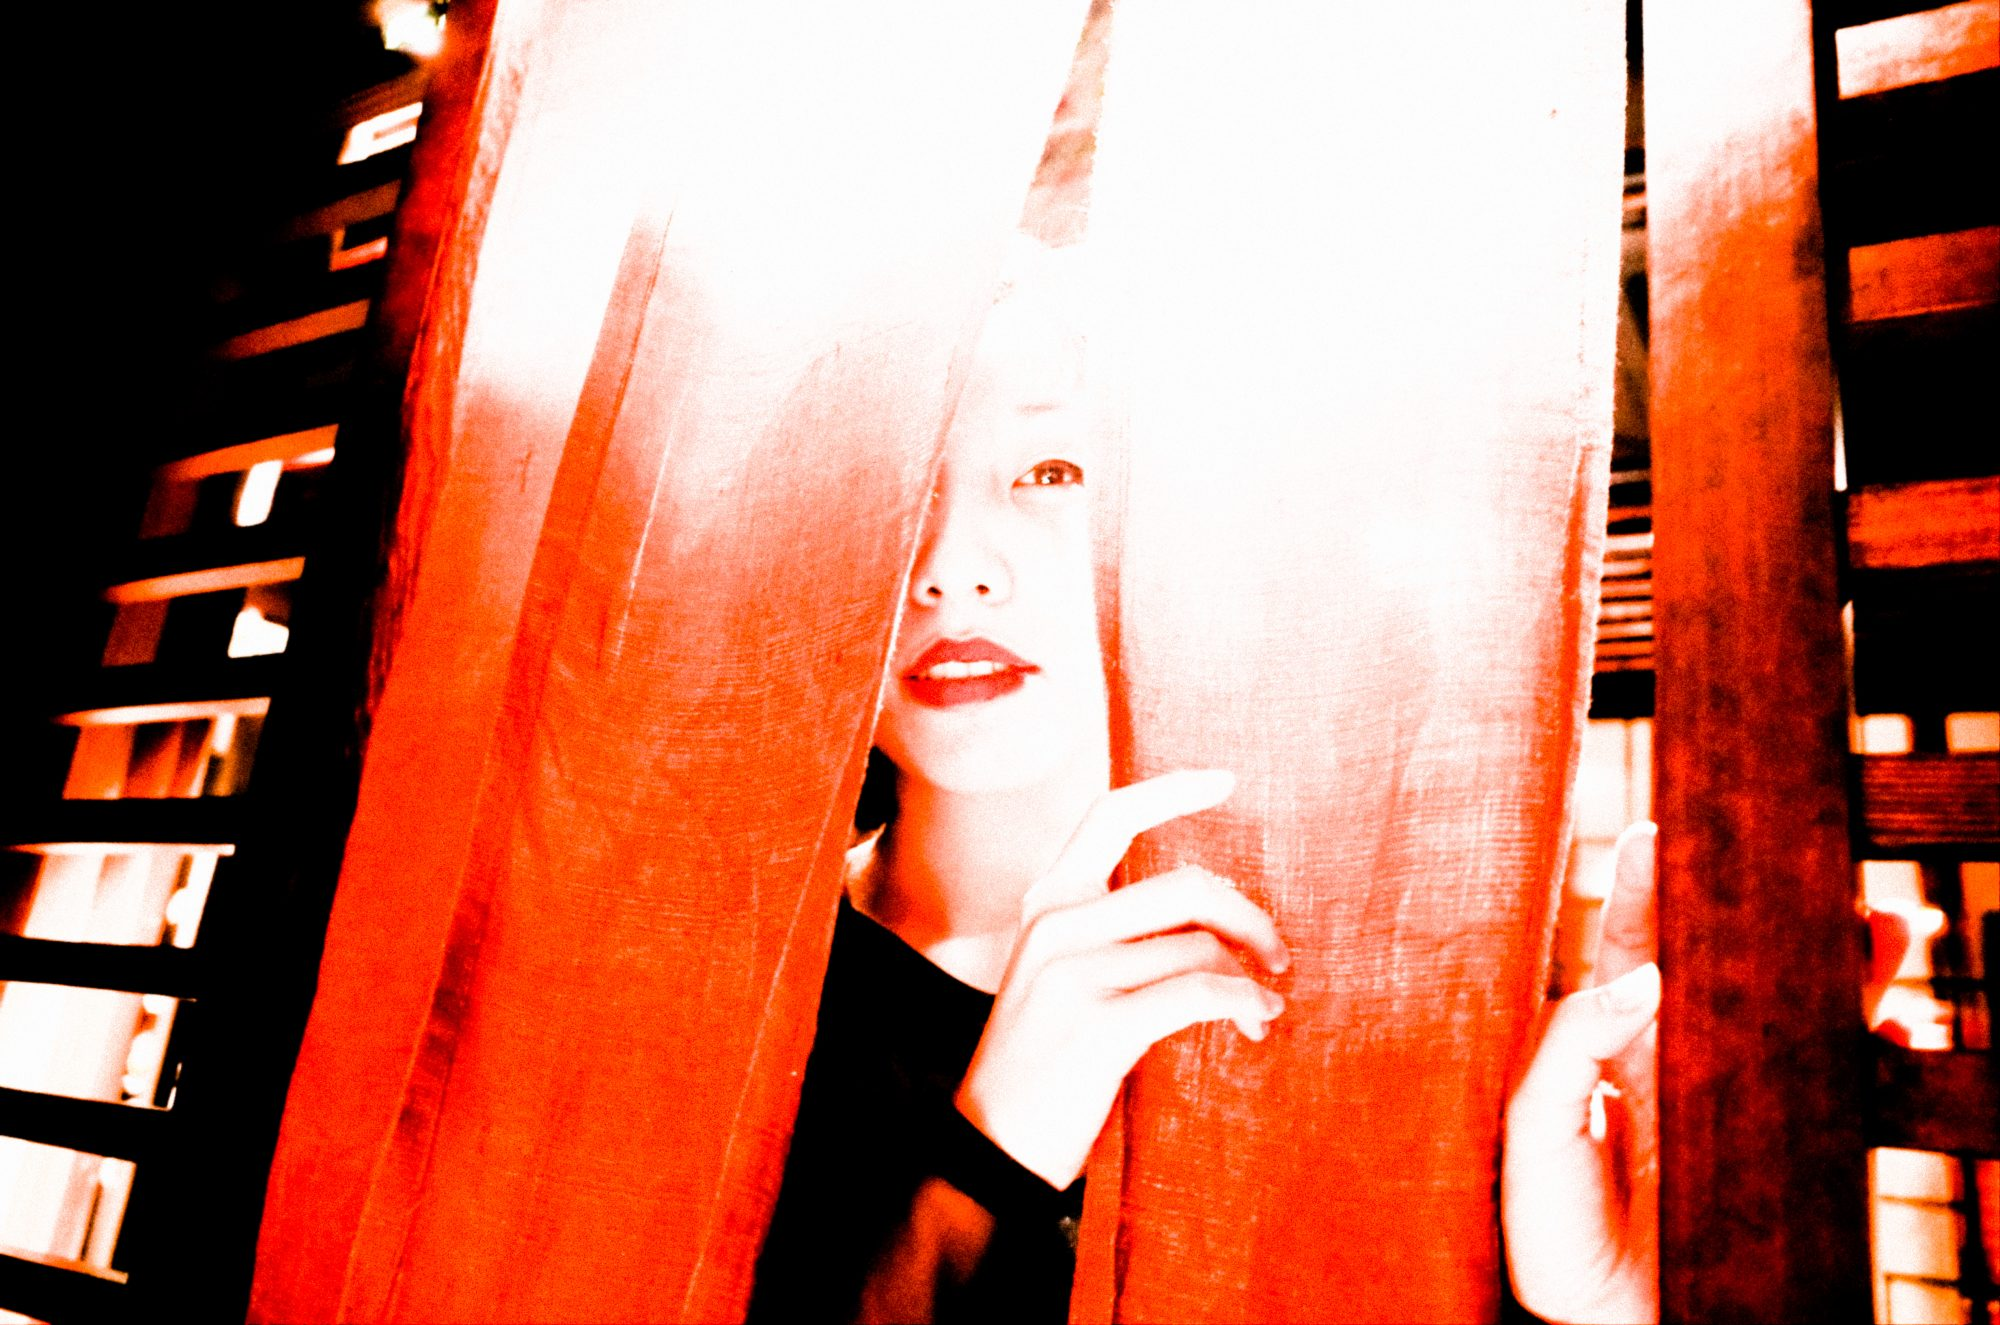 Cindy red curtain